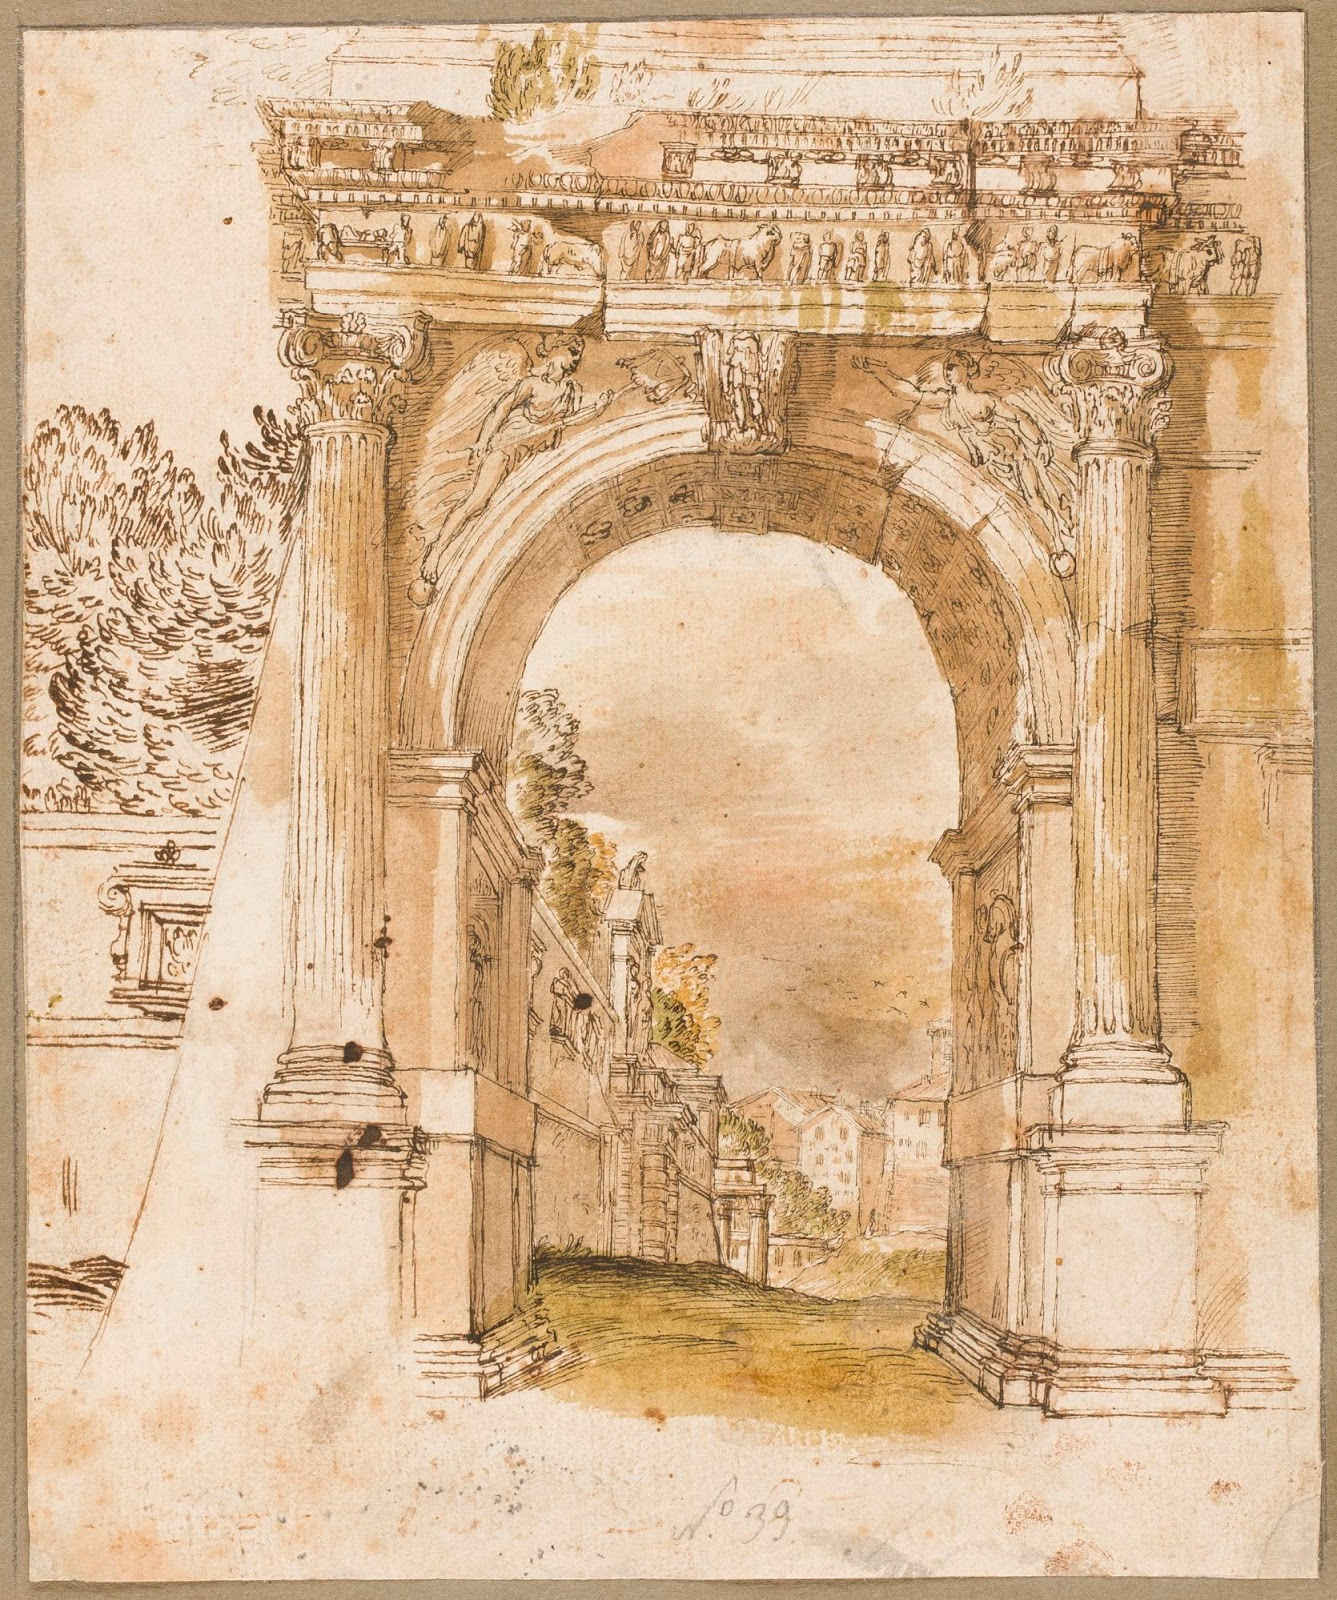 Roman Architecture: Spencer Alley: European Images Of Roman Arches, 17th-19th